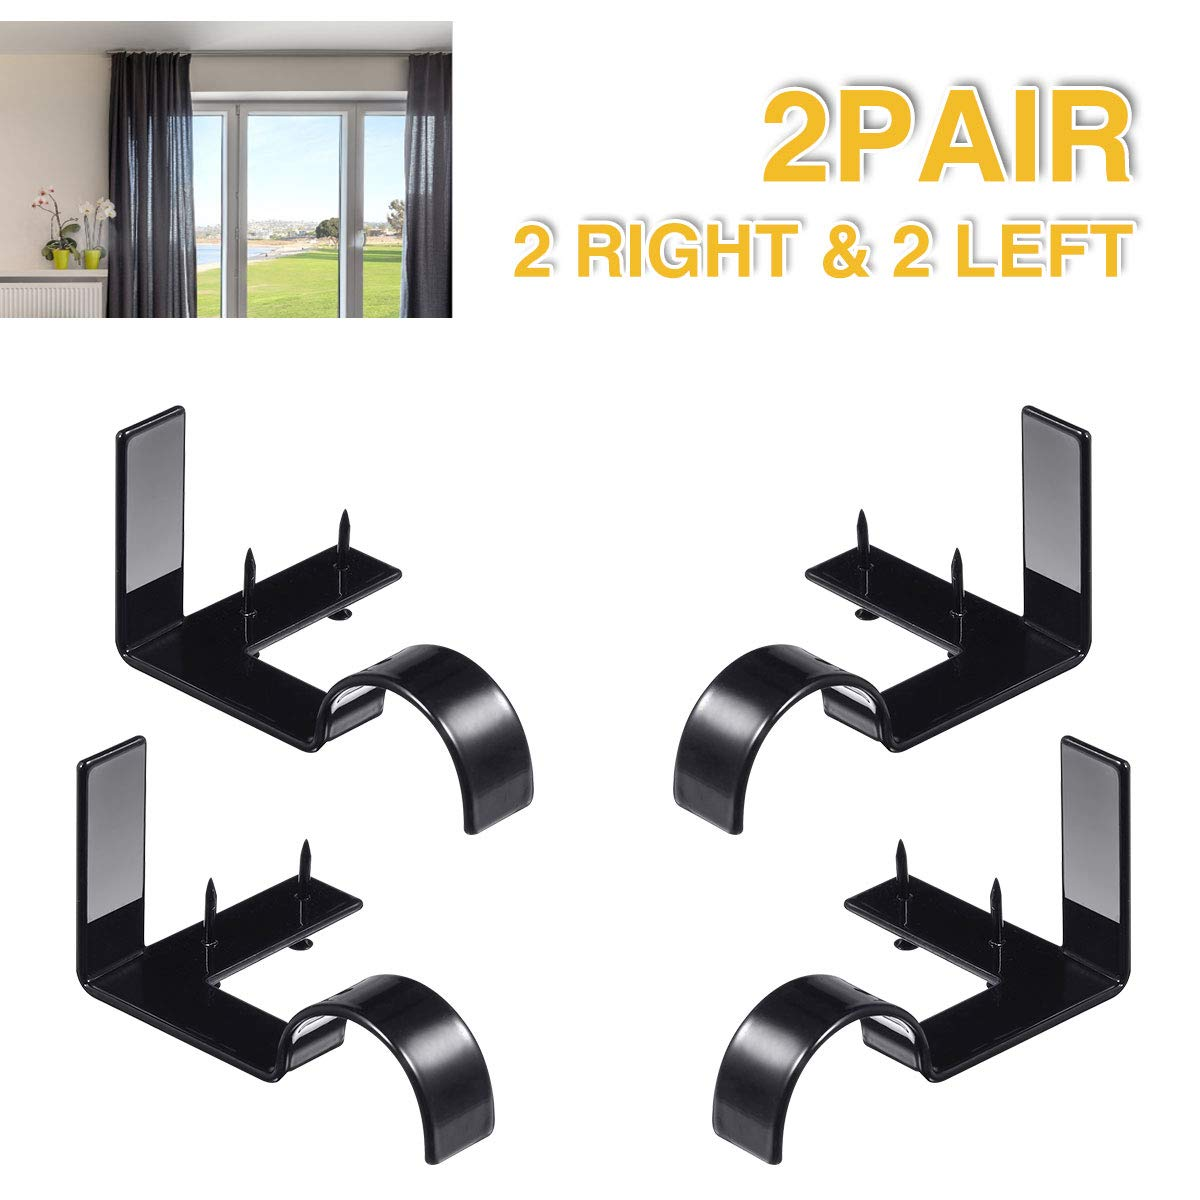 Single Curtain Rod Brackets - Black, 2 pair 4 PCS Curtain Rod Holder Set, Decoration for supporting Single Rod Curtain in Bedroom & Home, tap in Window Frame (Include Fixed Screw free from Drilling)